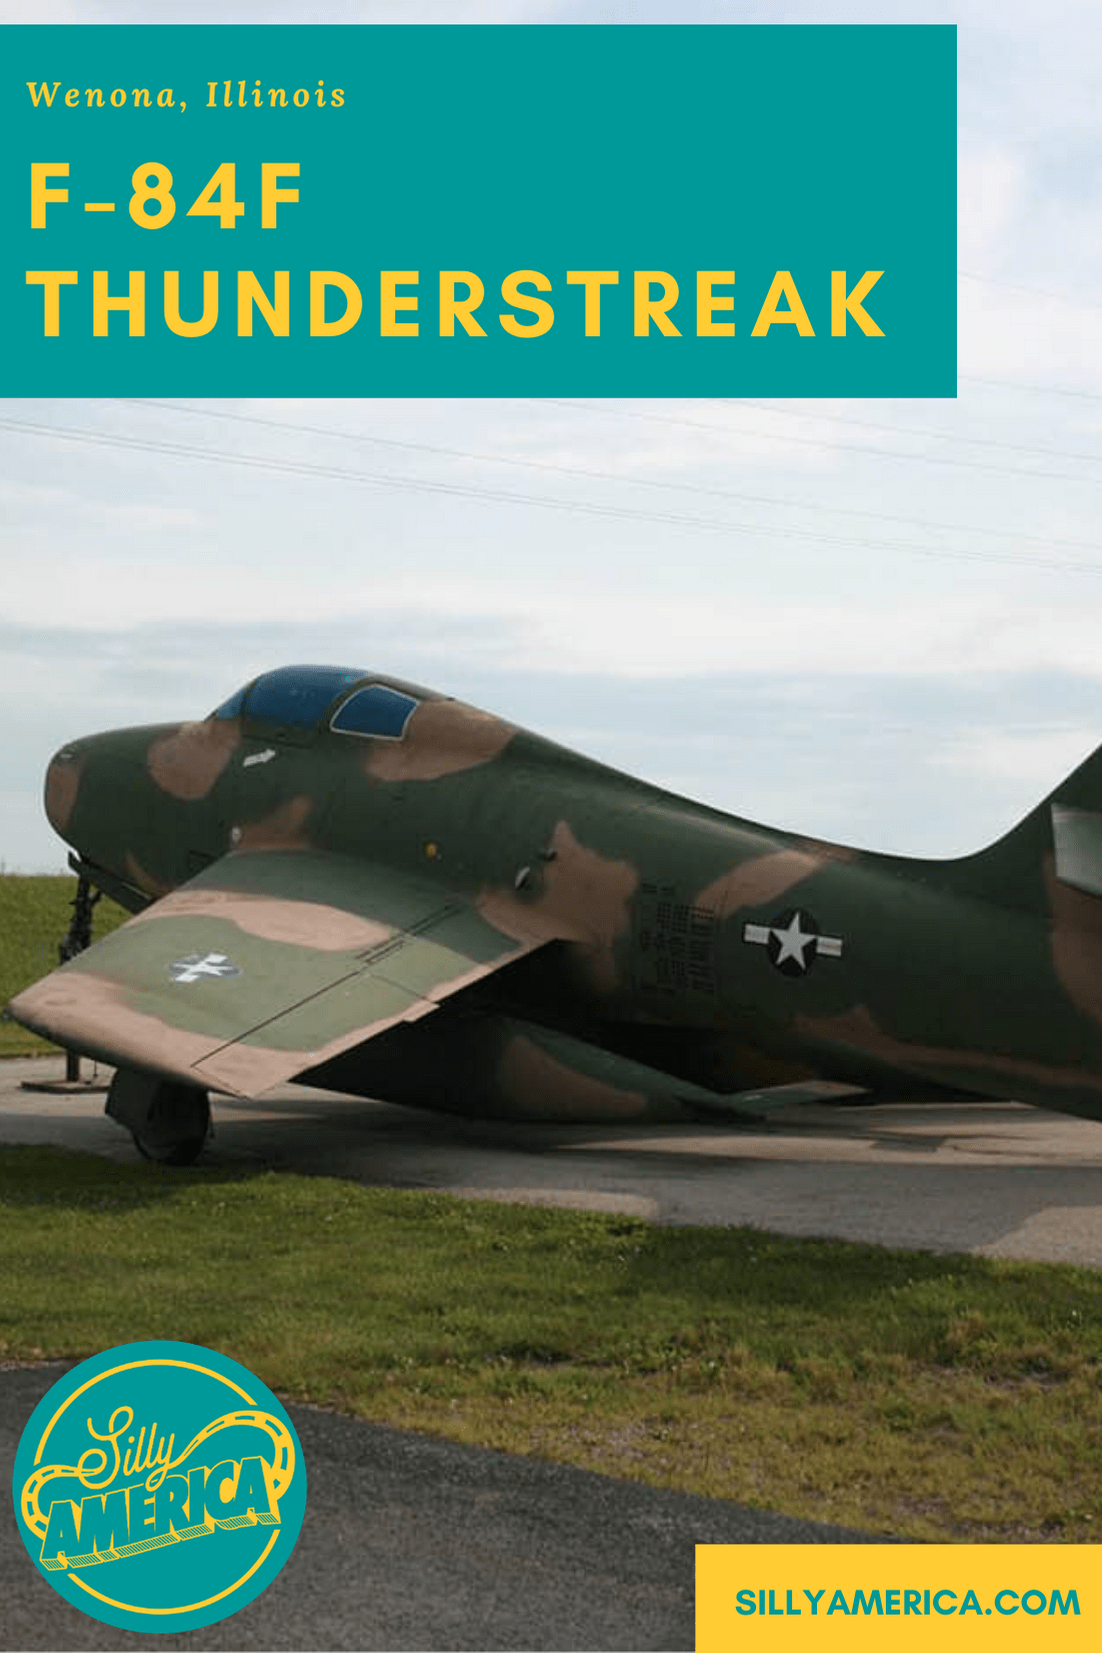 An old F-84F Thunderstreak fighter jet can be found in a motel parking lot in Wenona, Illinois. The camouflaged airplane is a fun site to see outside of the Wenona America's Best Value Inn (formerly a Best Western, formerly a Super 8). Before living at the motel, the parking lot jet plane could be found at various locations around town since the late 1960s/early 1970s. #IllinoisRoadsideAttractions #IllinoisRoadsideAttraction #RoadsideAttractions #RoadsideAttraction #RoadTrip #IllinoisRoadTrip